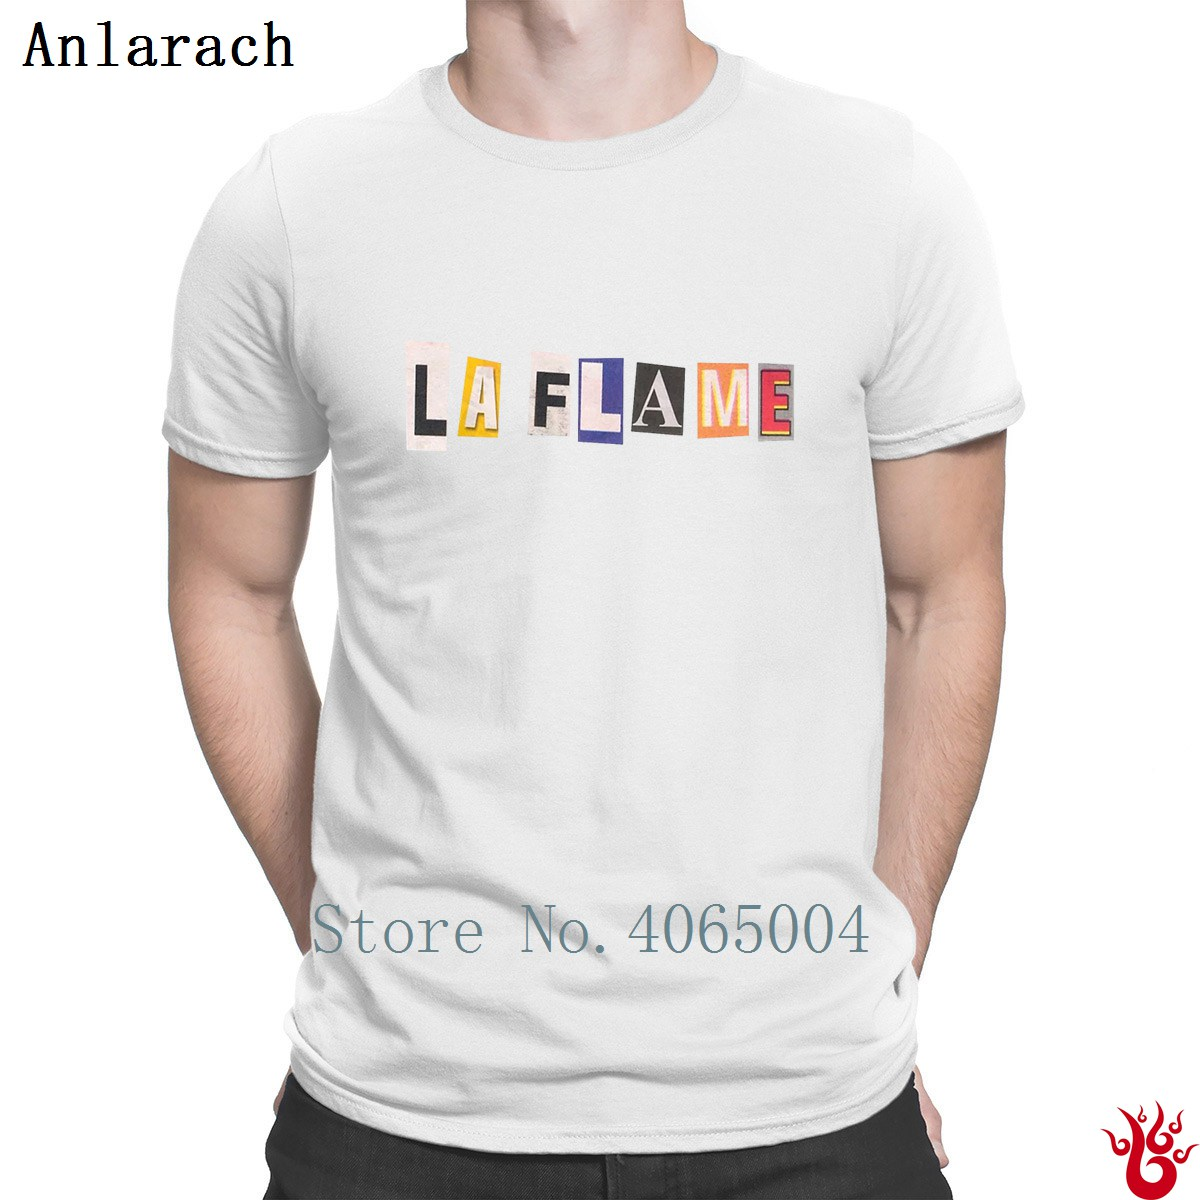 d23843644399 No matter what kinds of t shirts and shirts you are finding now, we can  provide you that. For boys, girls, men, women, we have them all.